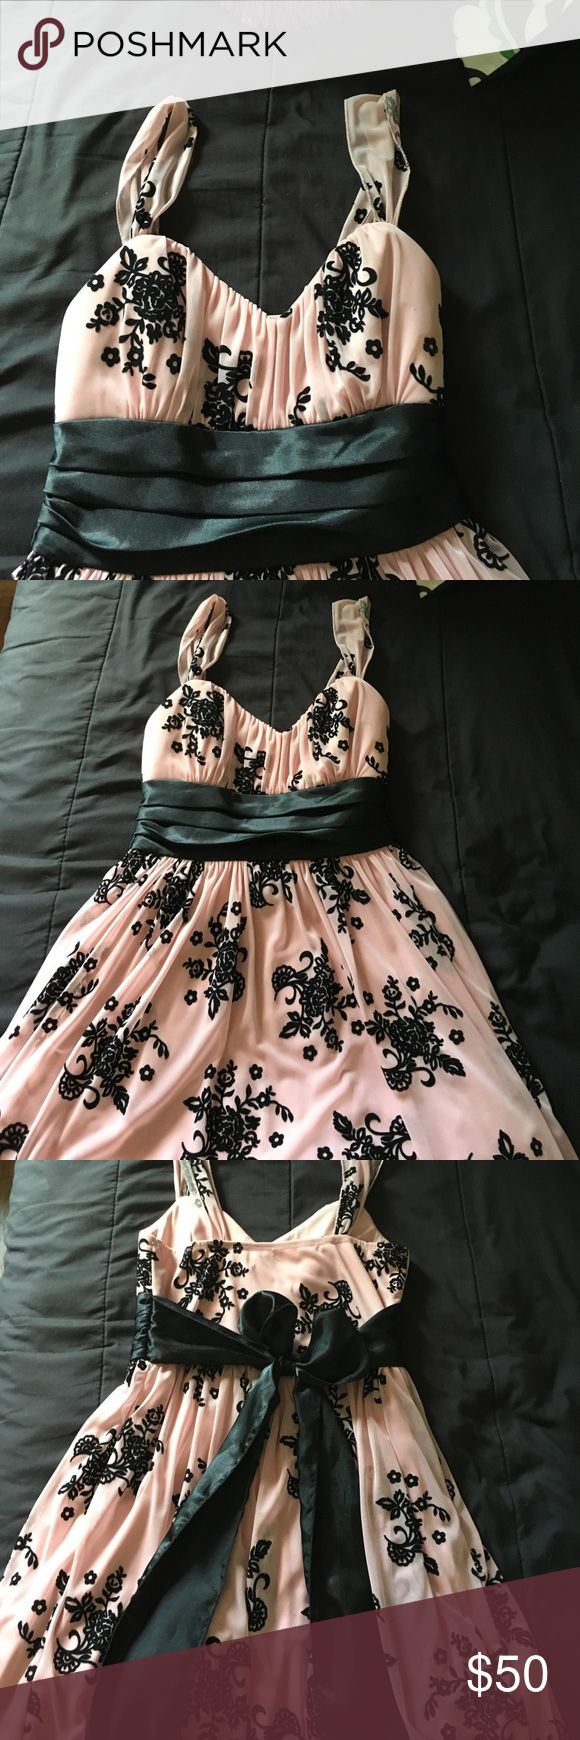 Formal dress Light pink with flower patches.                                              This dress has been worn a couple times for dinner dates and dances. Great condition. Dresses Mini